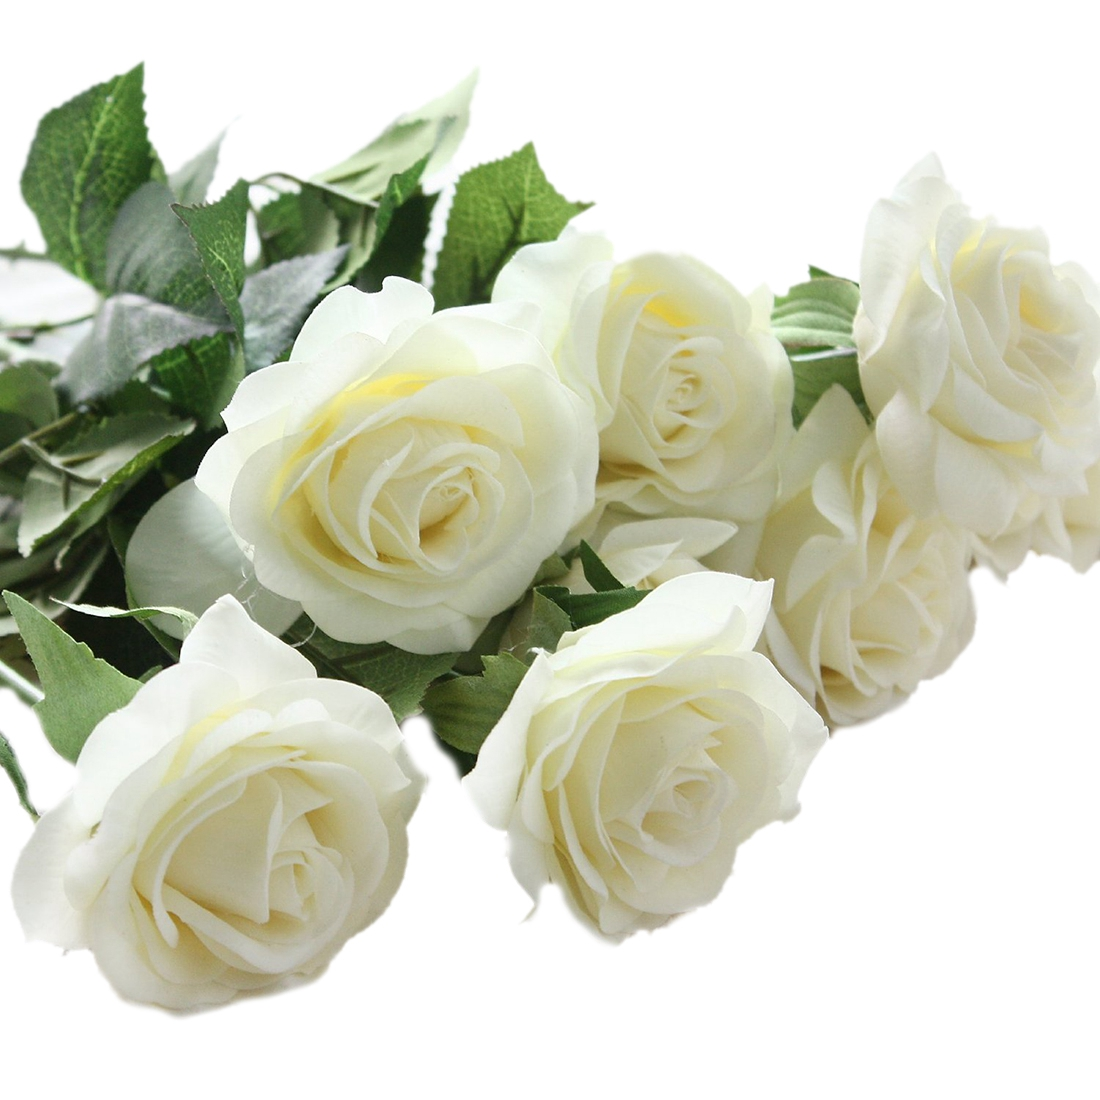 Home Decor Discount Stores 10 Pcs Latex Real Touch Rose Decor Rose Artificial Flowers